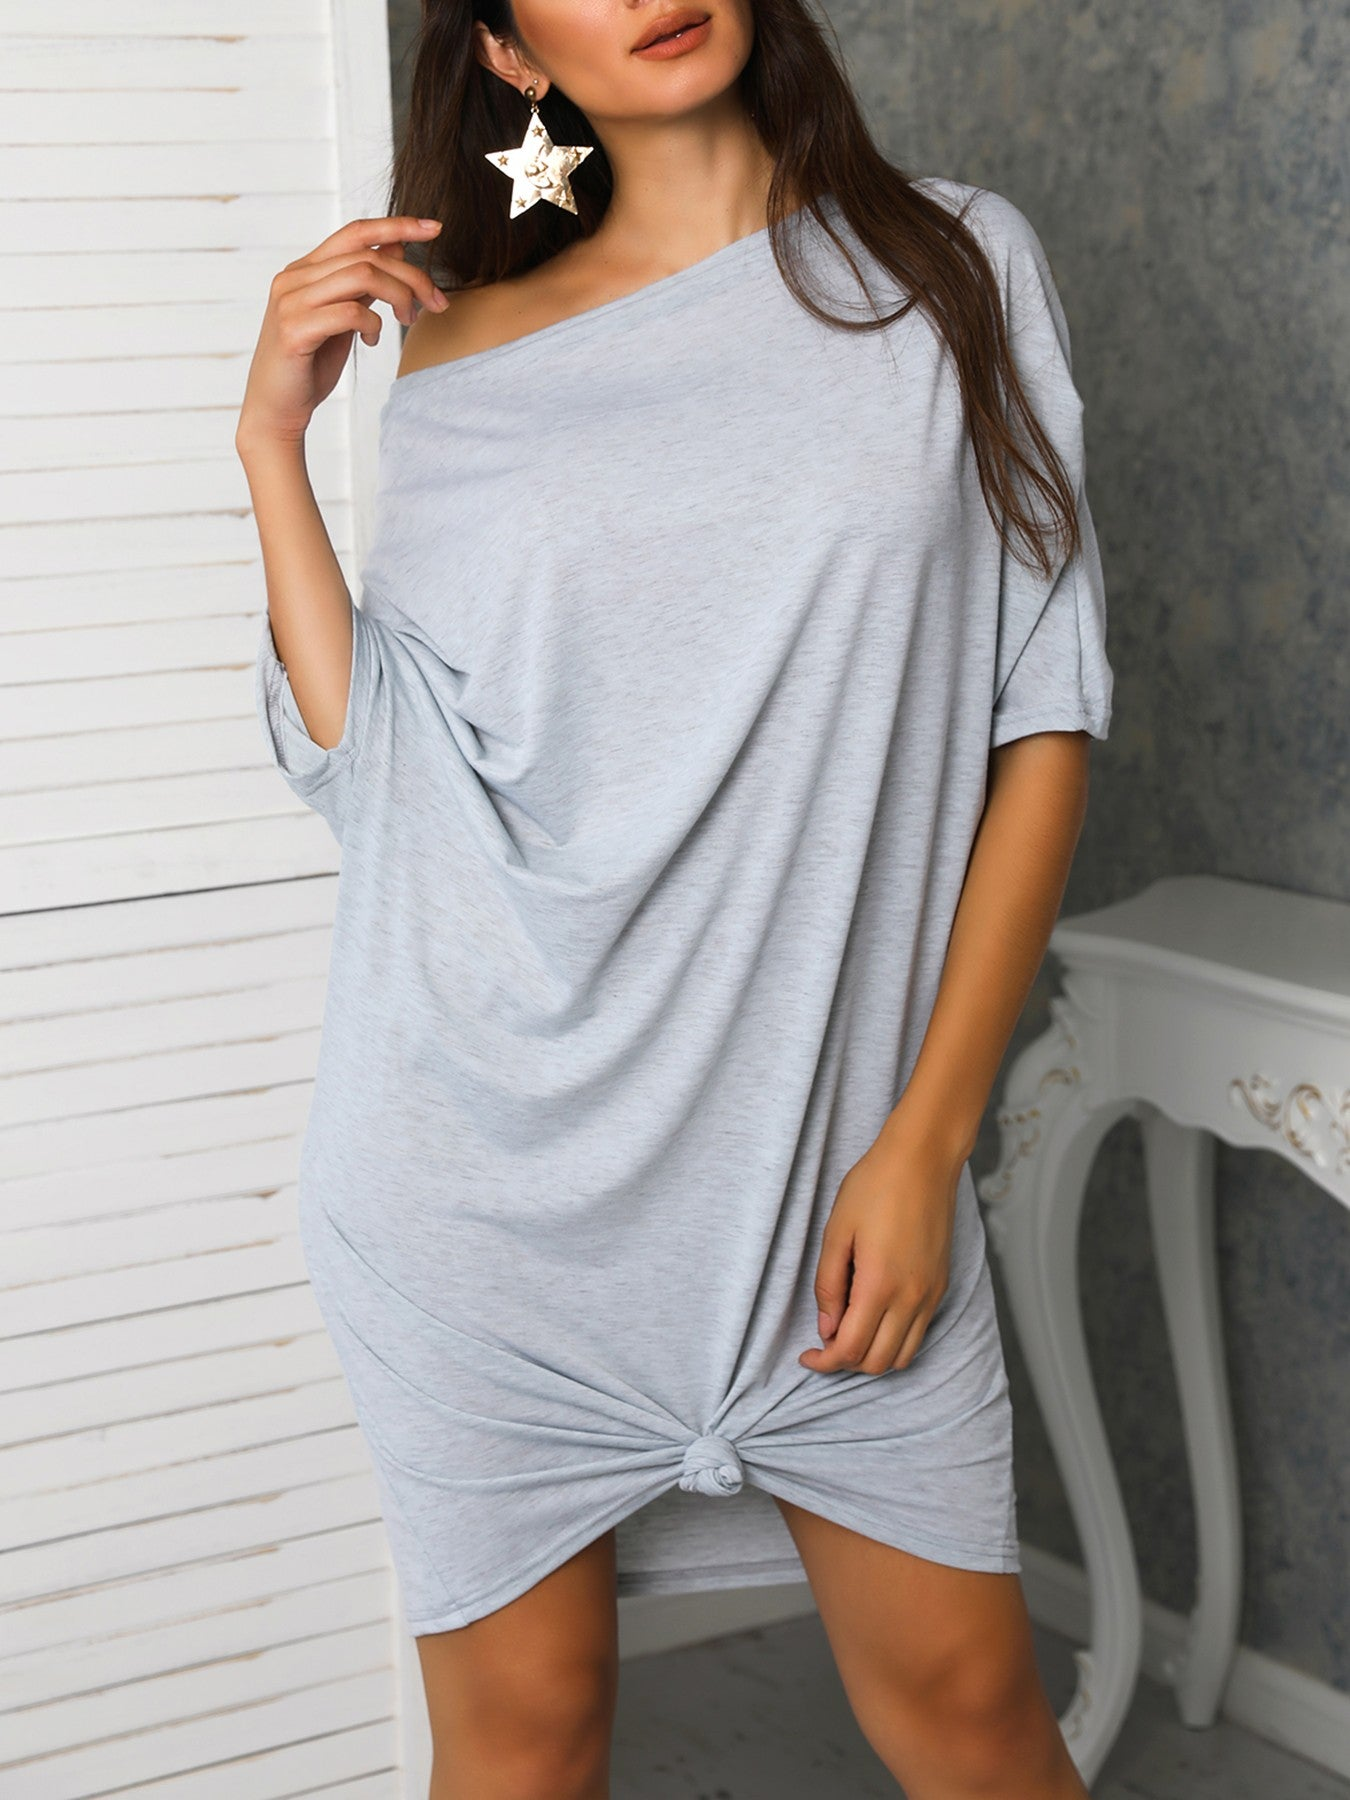 Batwing Sleeve Knotted Solid Loose Dress - DadHats2ow6ix